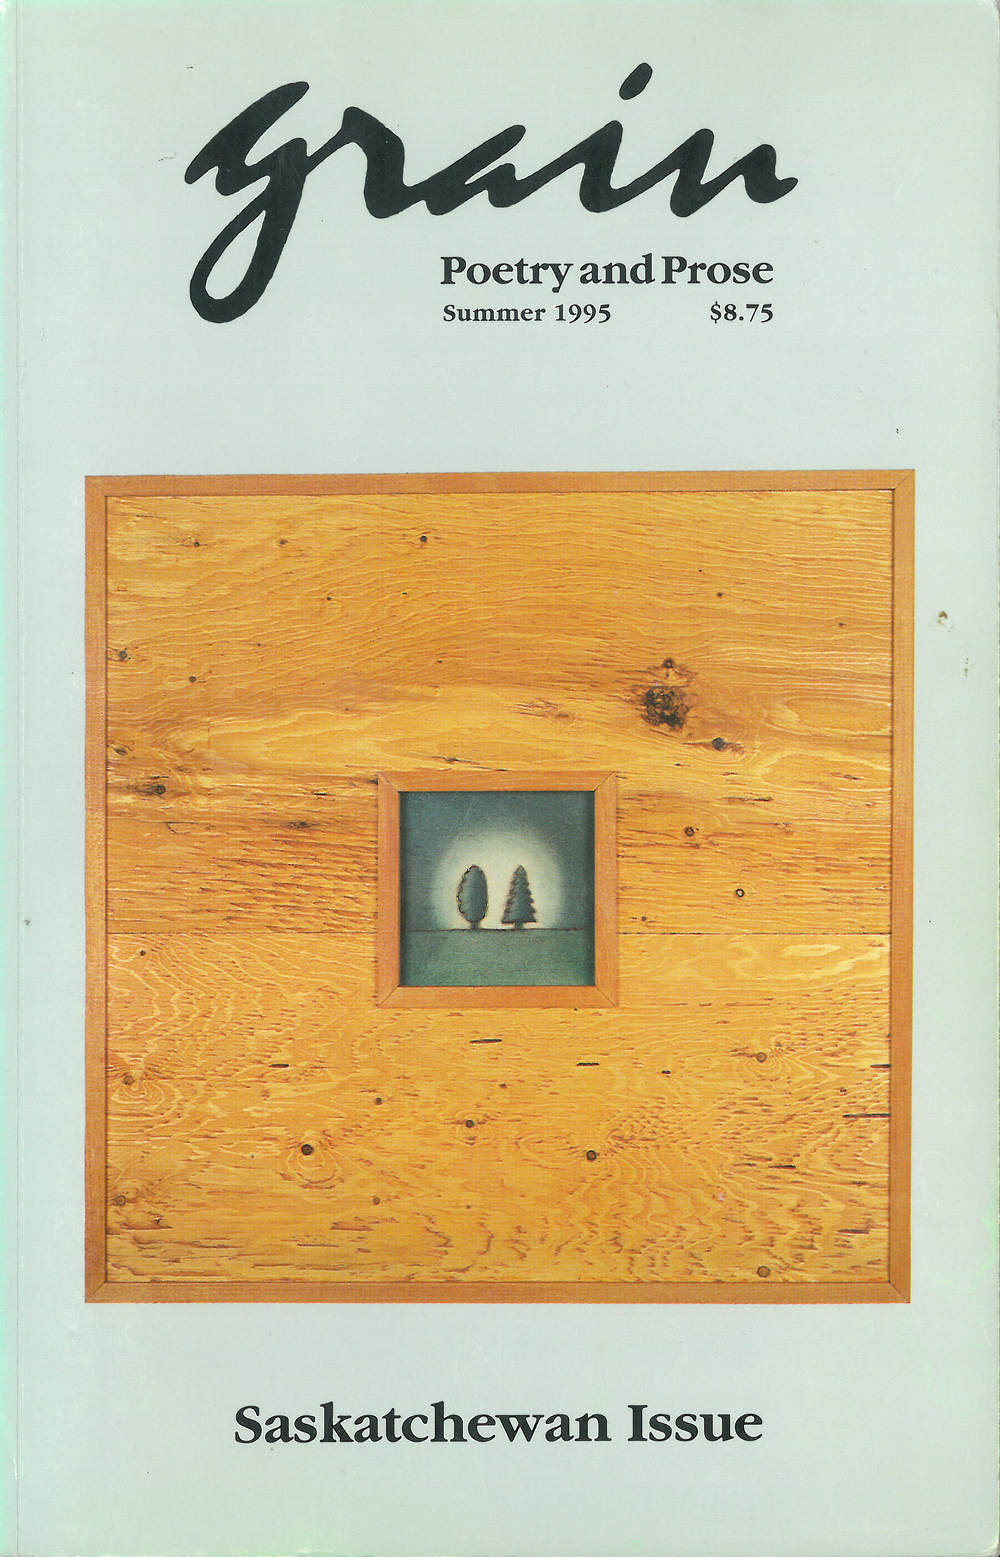 23.1 Summer 1995, Saskatchewan Issue